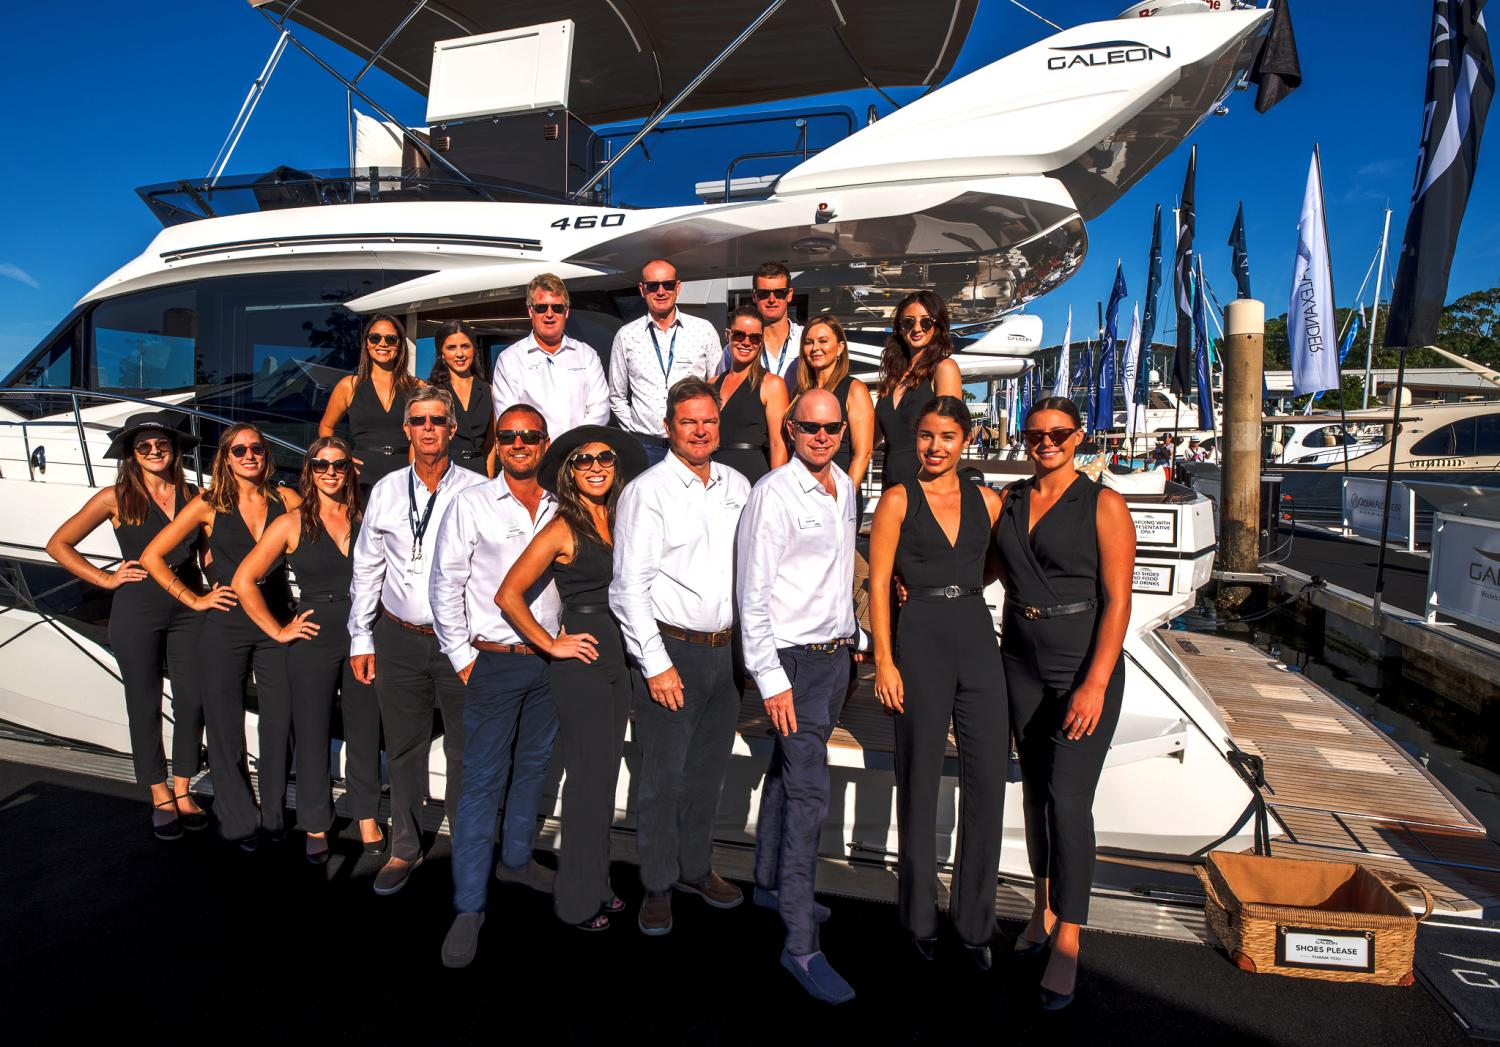 Image 3 for Galeon Yachts to Host Sydney Preview Day prior to SIBS